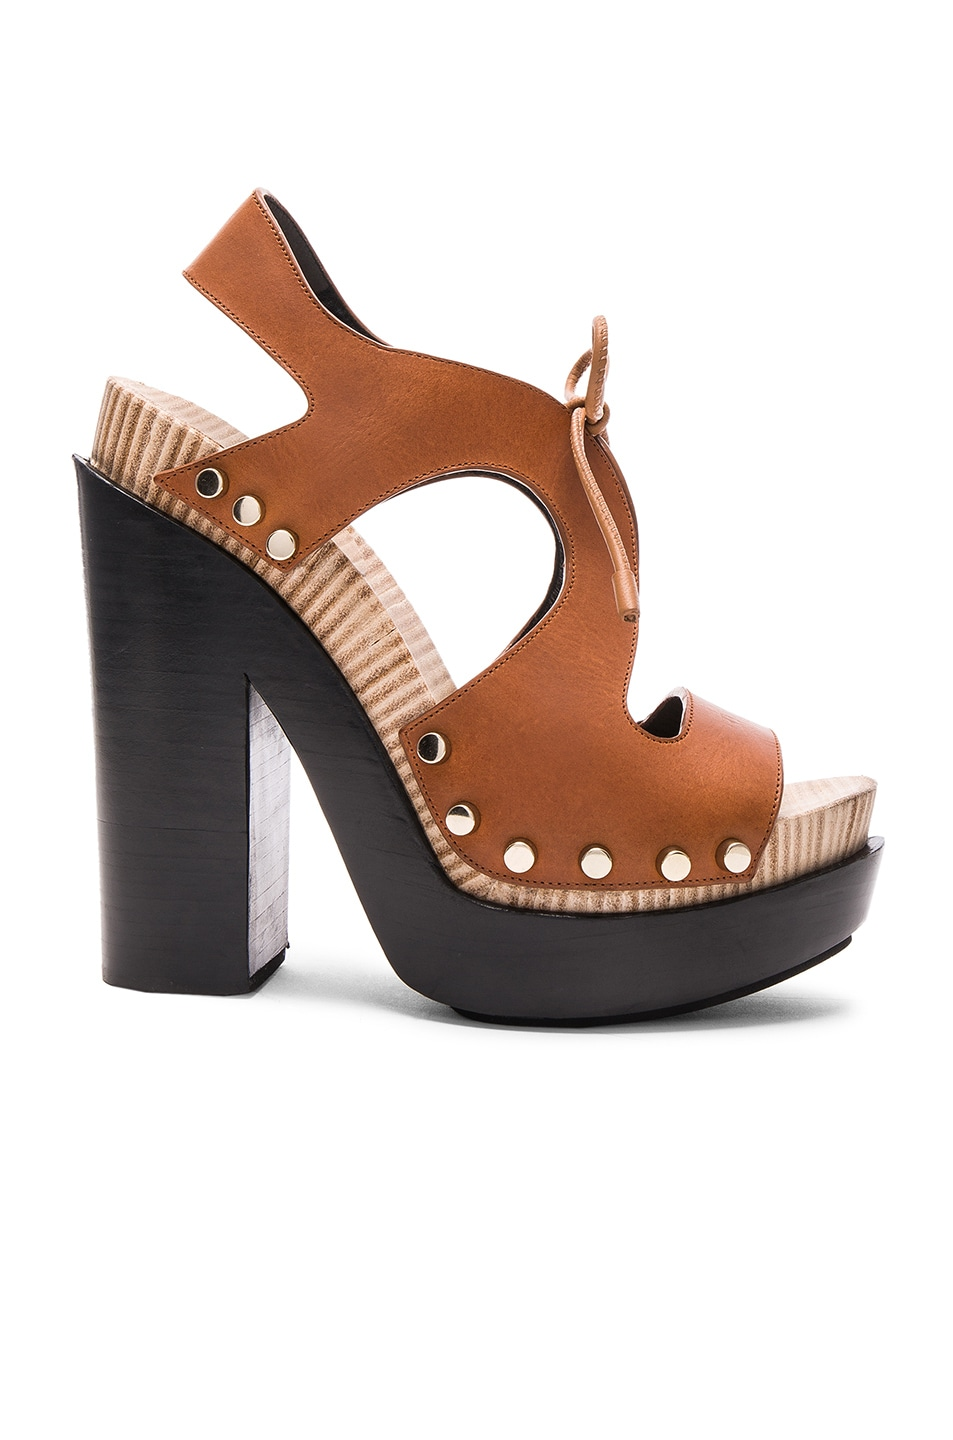 Image 1 of Balenciaga Leather Platform Sandals in Caramel